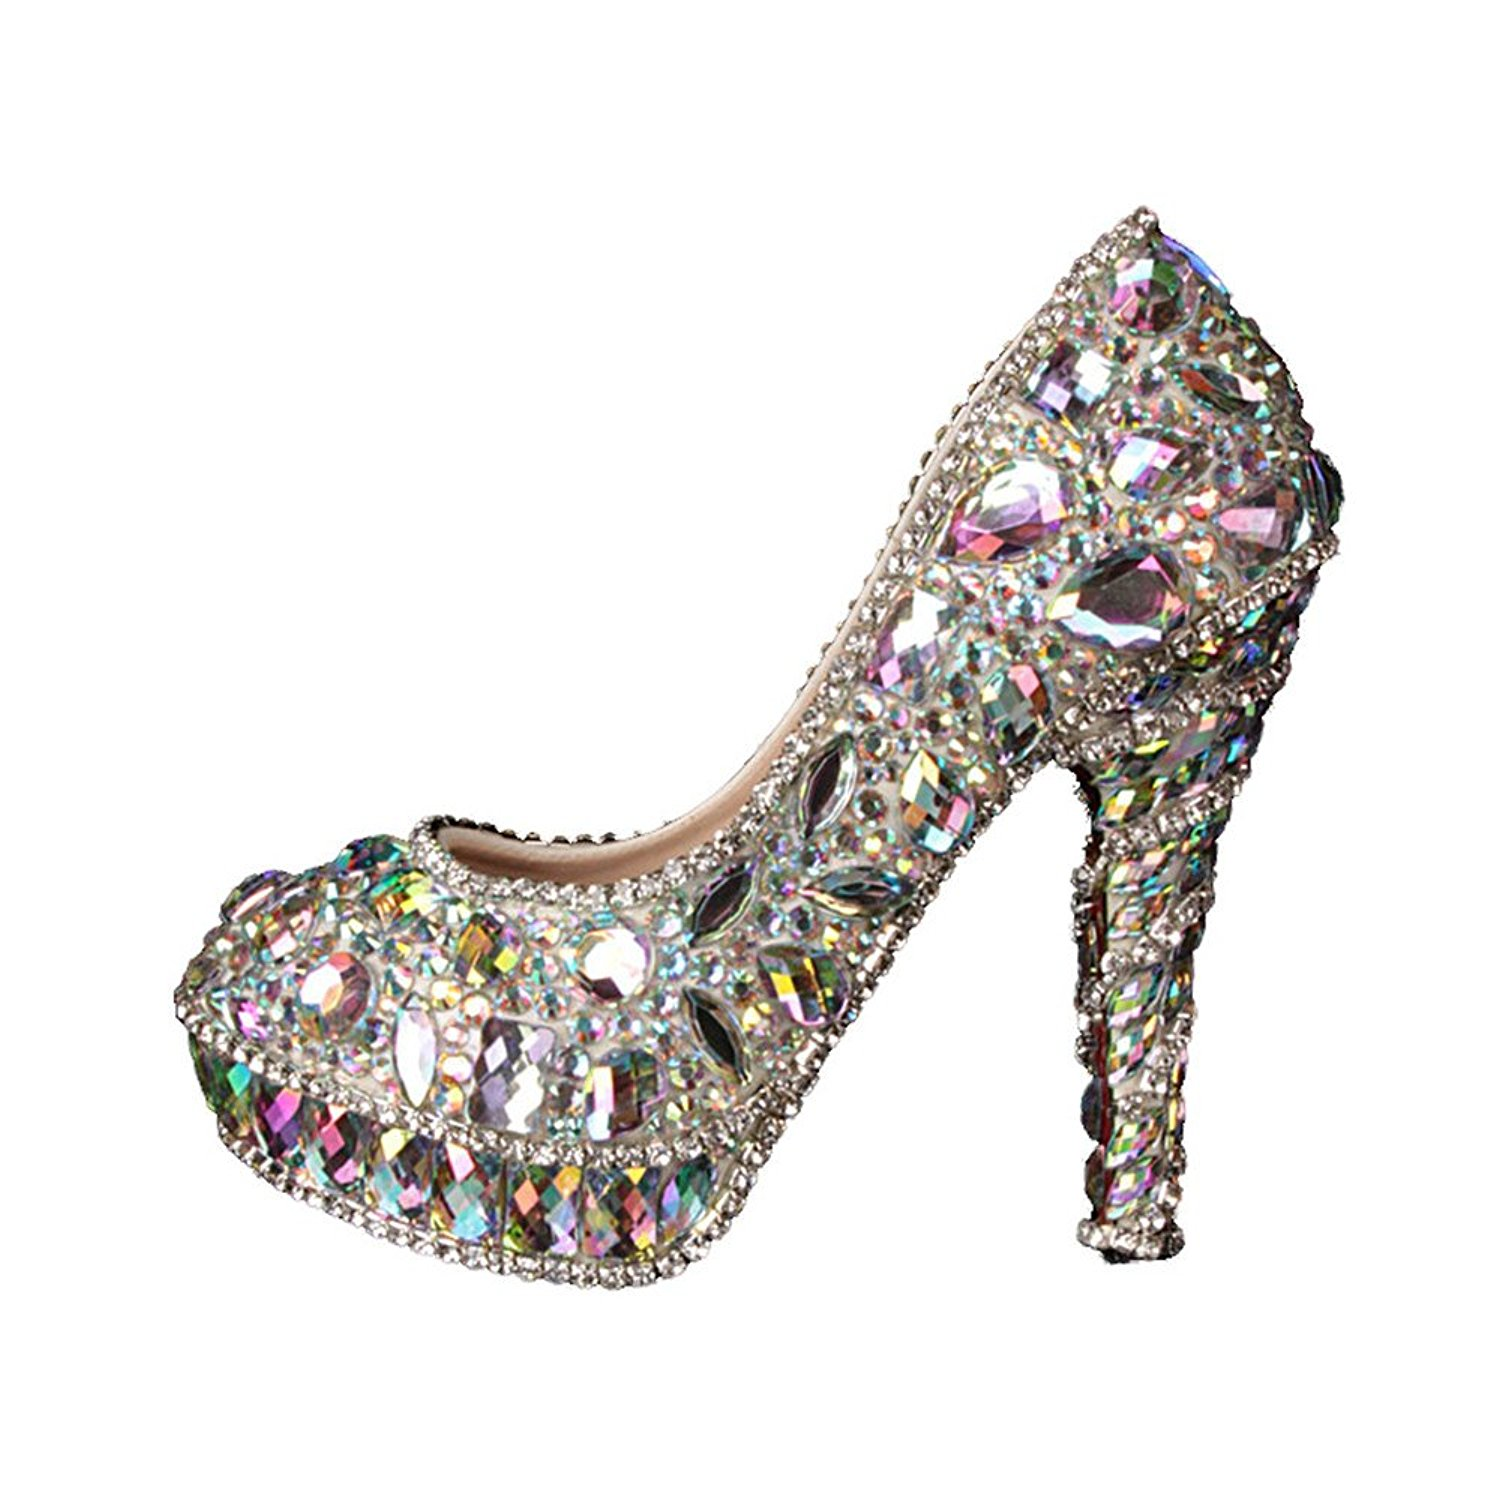 df9bb924ec3282 Get Quotations · Silver Colorful Crystal Shoes Womens High Heels Pumps For  Weddings Prom Party For Weddings Prom Party